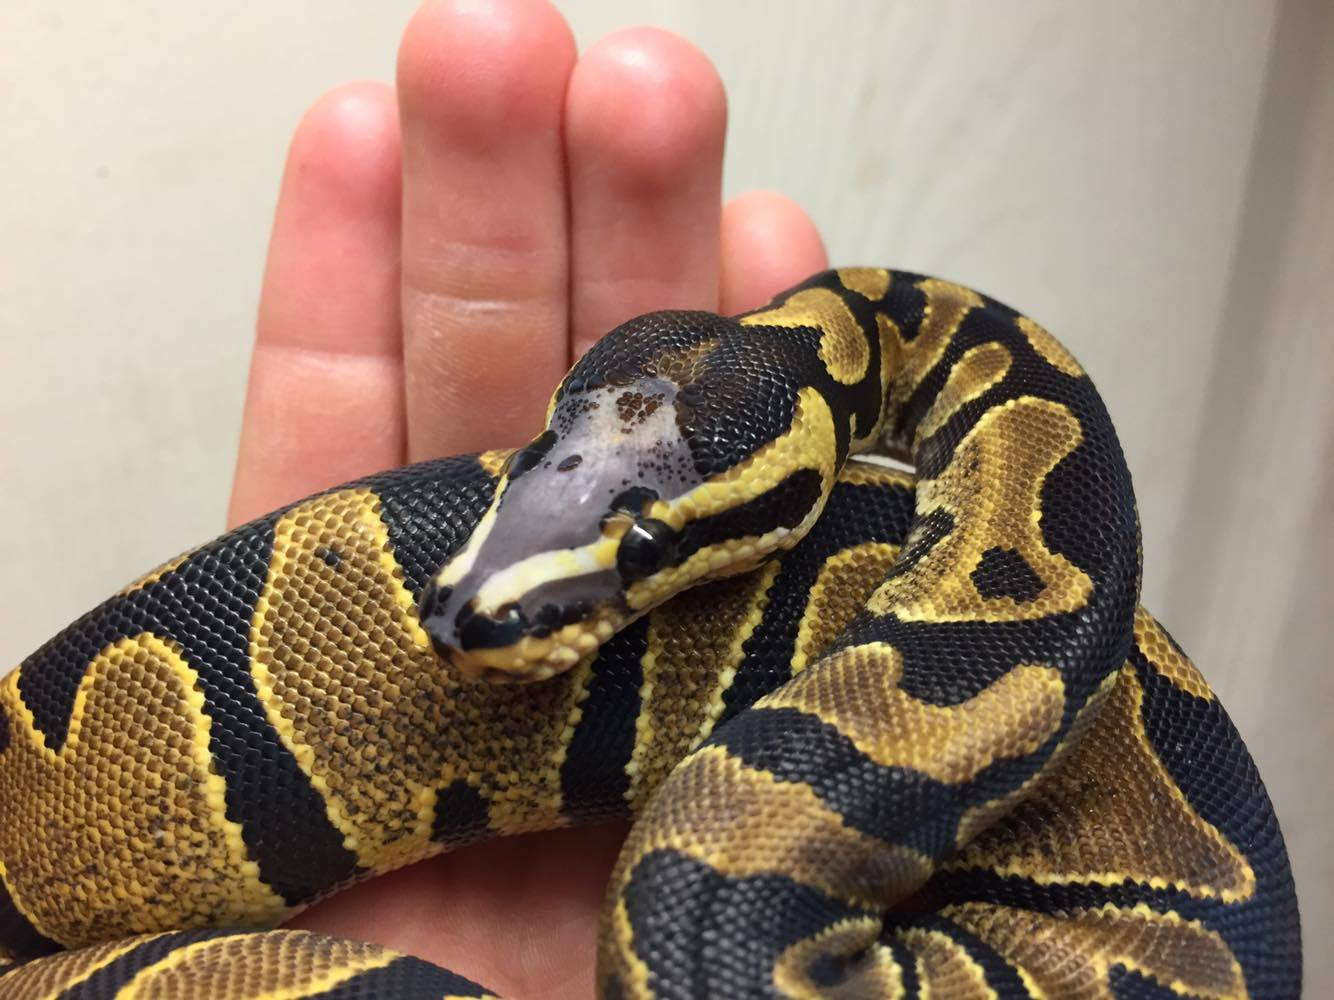 Royal pythons available from Bob Clark Reptiles Europe-1scaleless.jpg